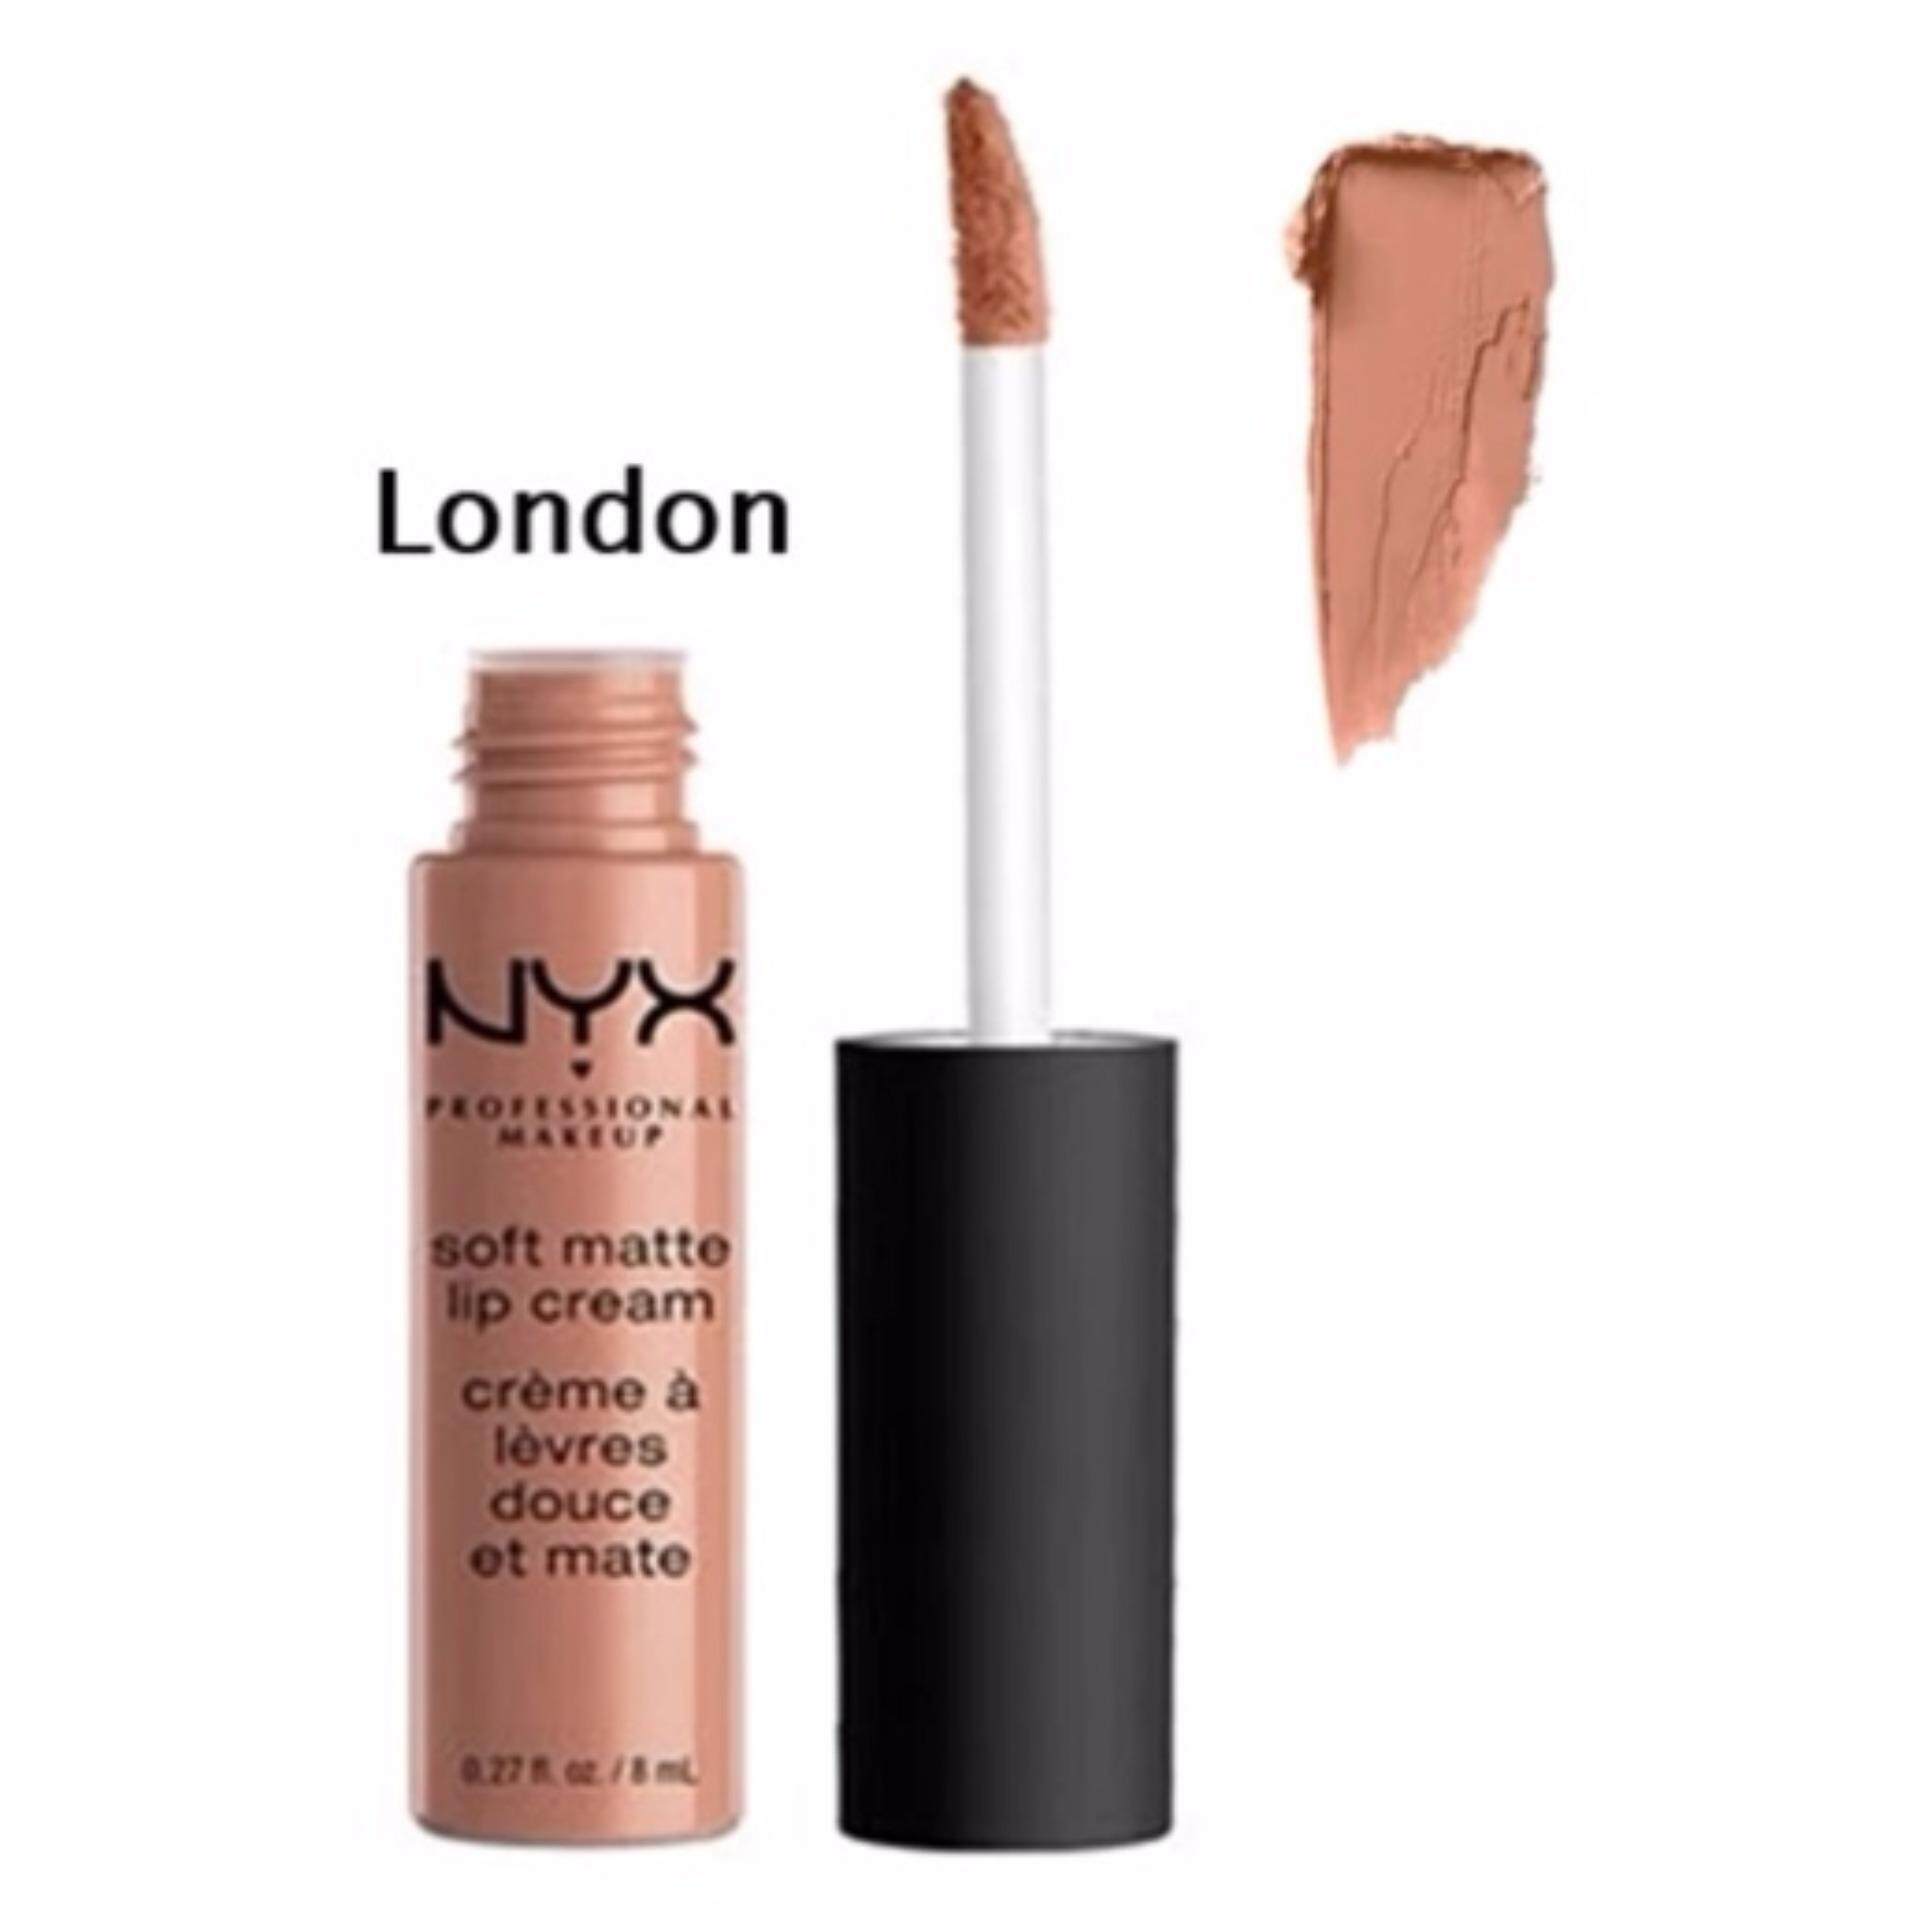 NYX Professional Makeup Soft Matte lip cream SMLC04 - London ขนาด 8 ml.